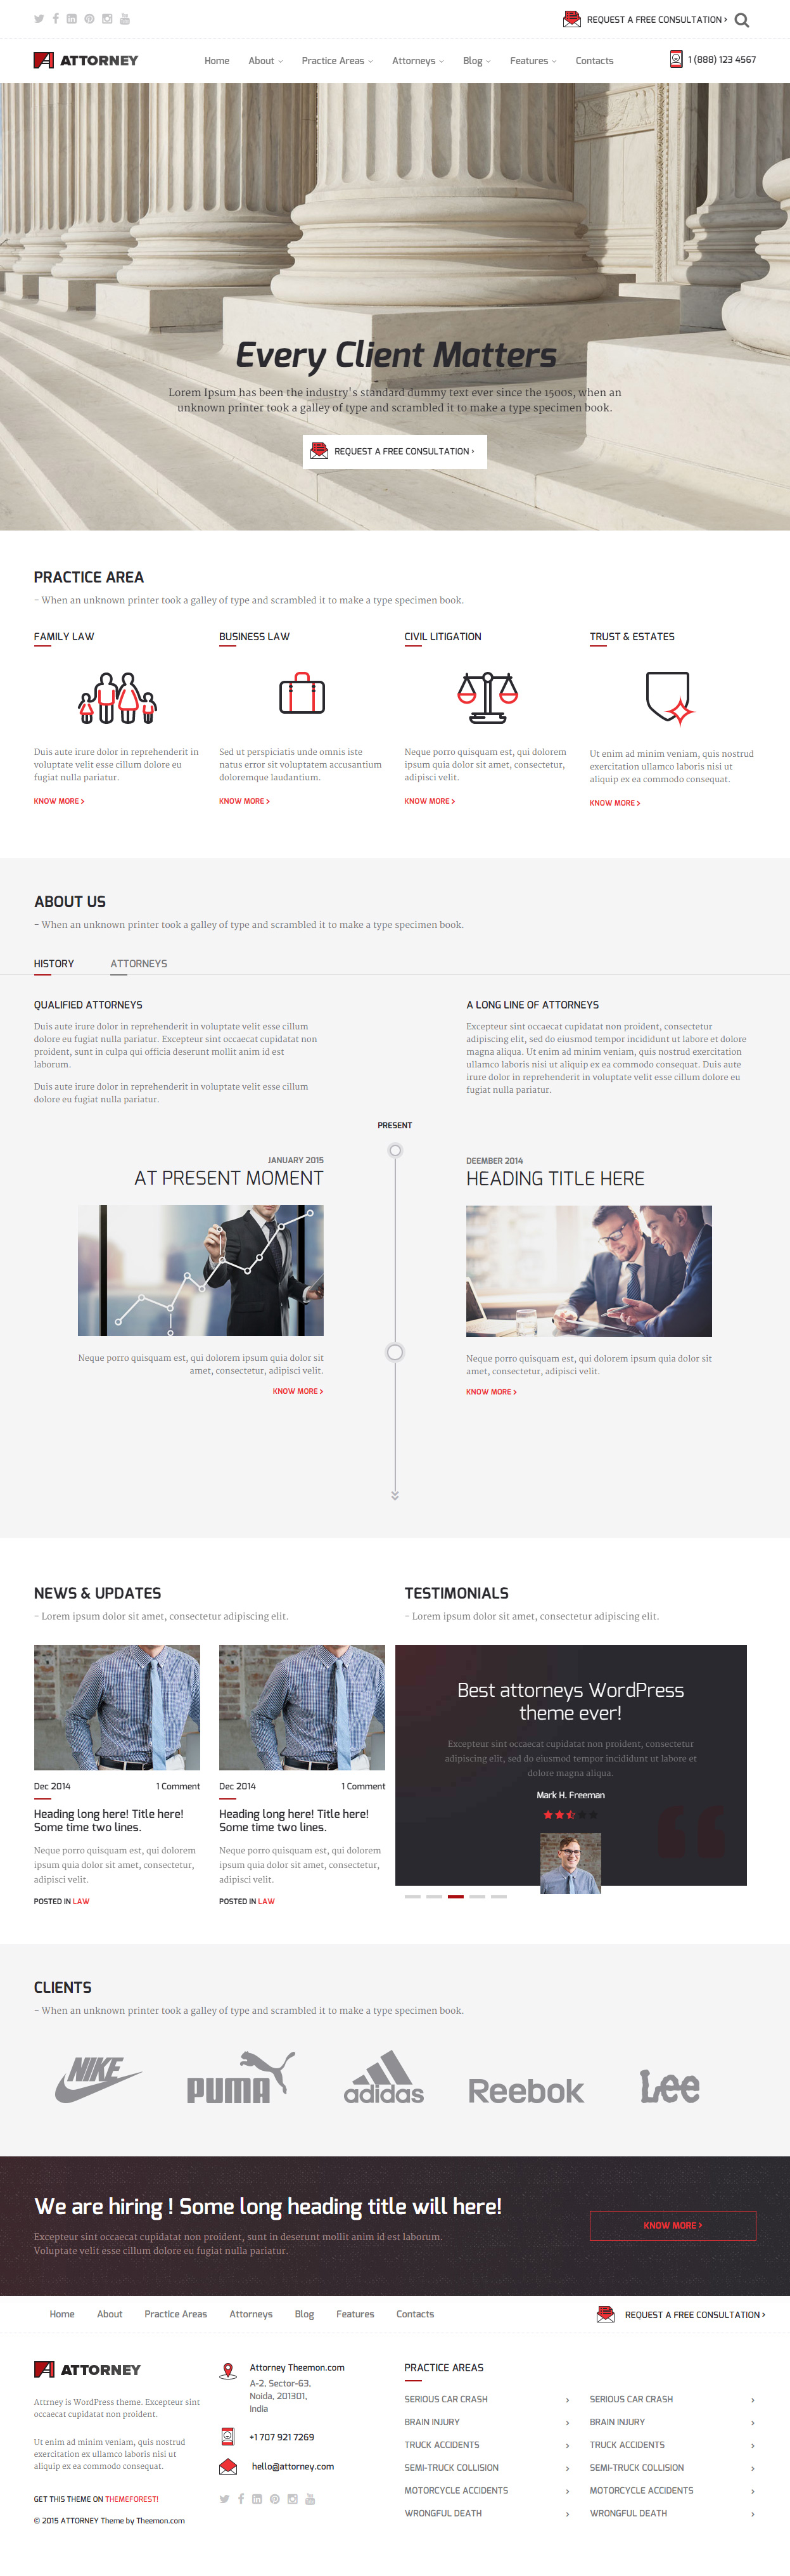 15+ Best Responsive Lawyer Templates HTML5 2017 - Responsive Miracle